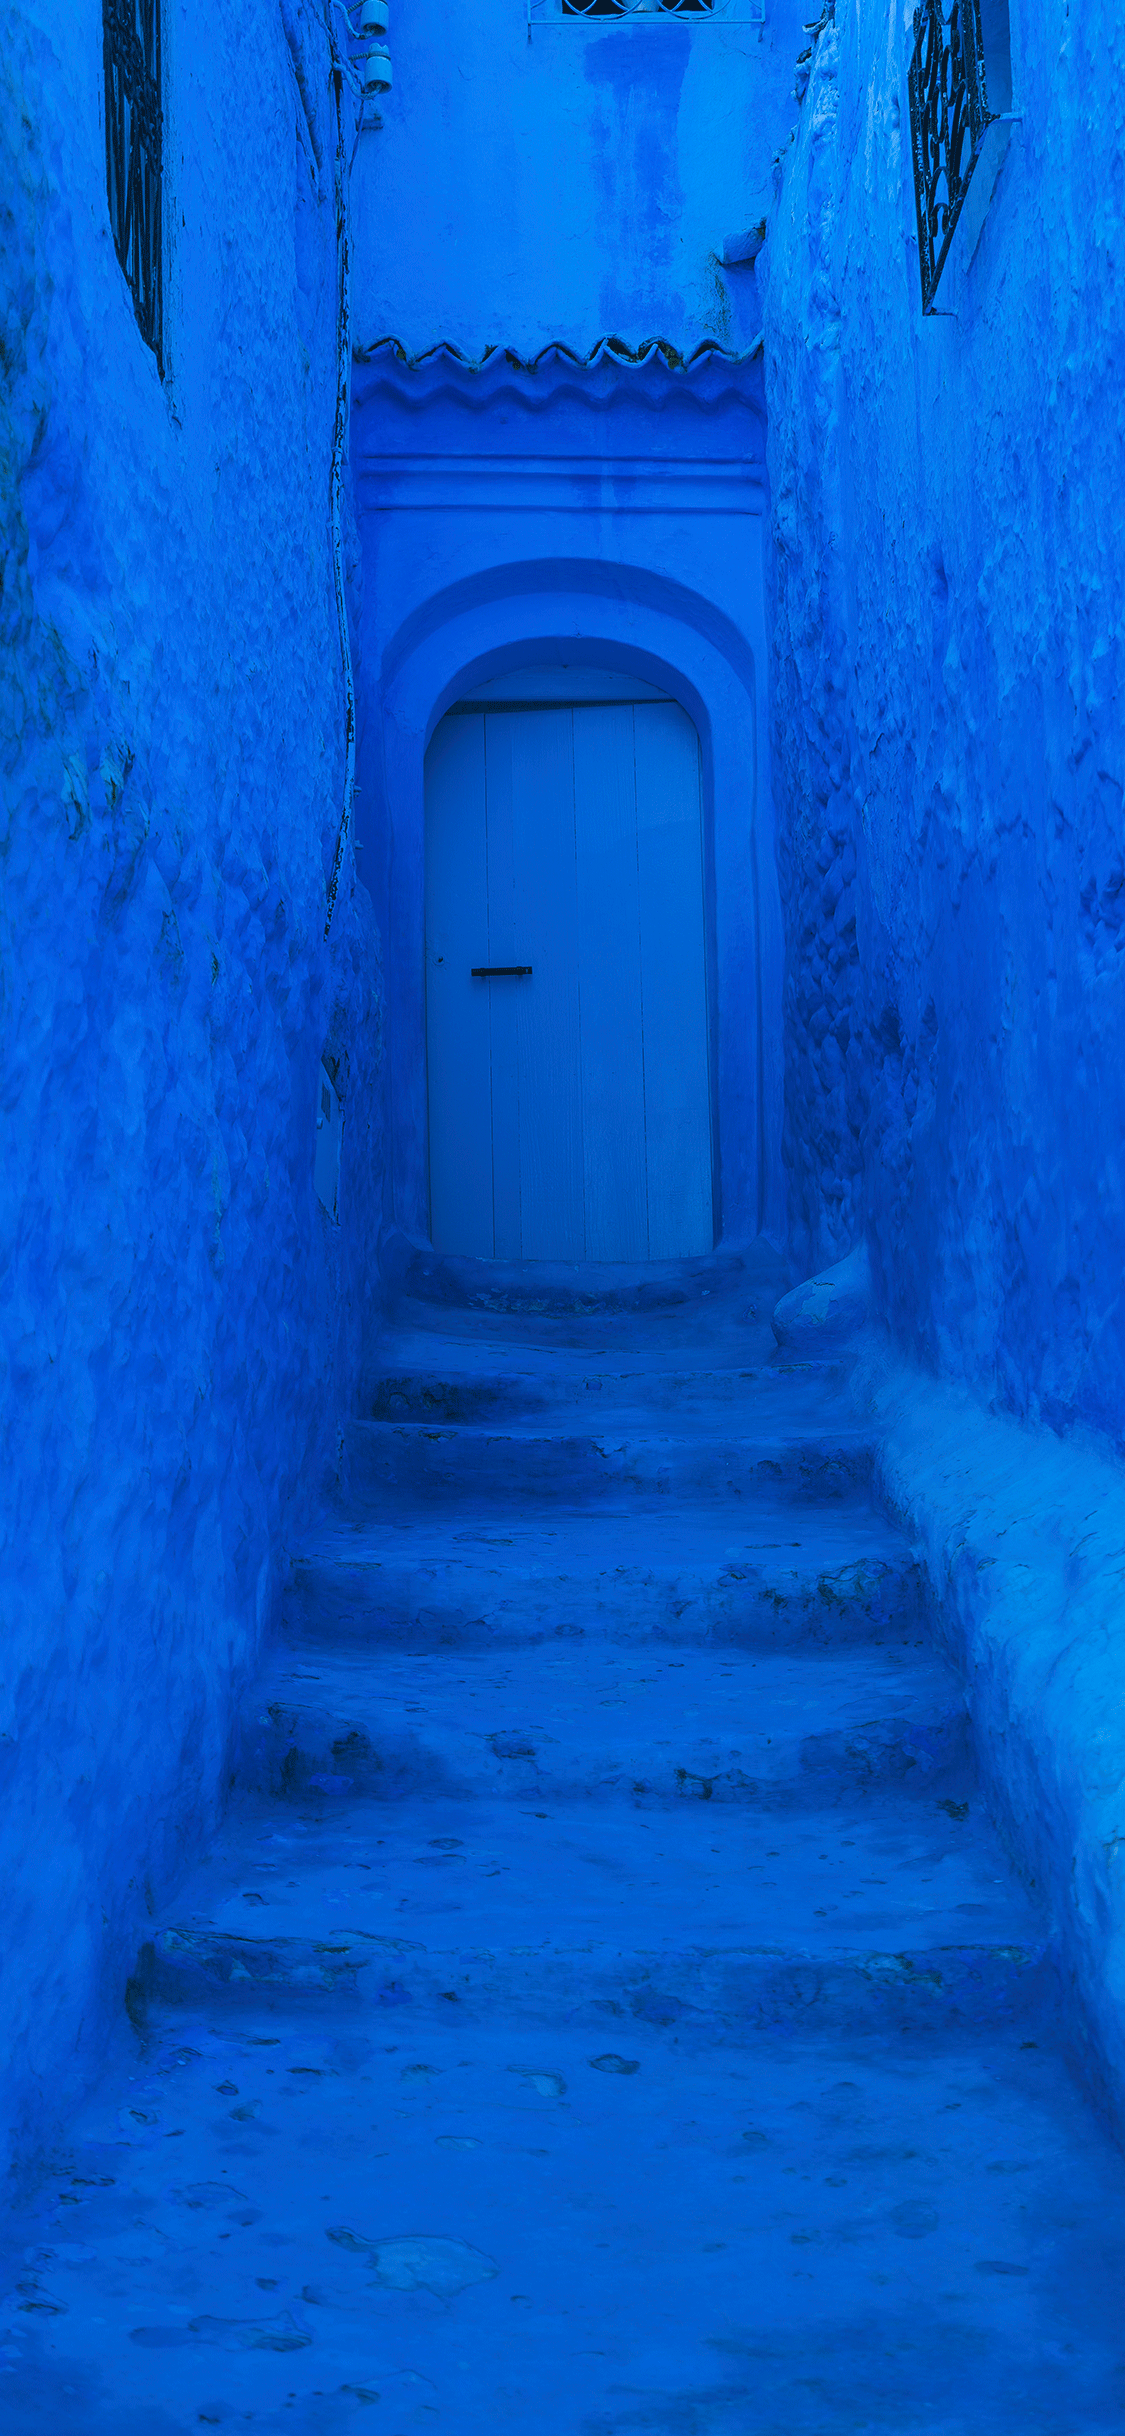 iPhone wallpaper blue door Fonds d'écran iPhone du 24/09/2018